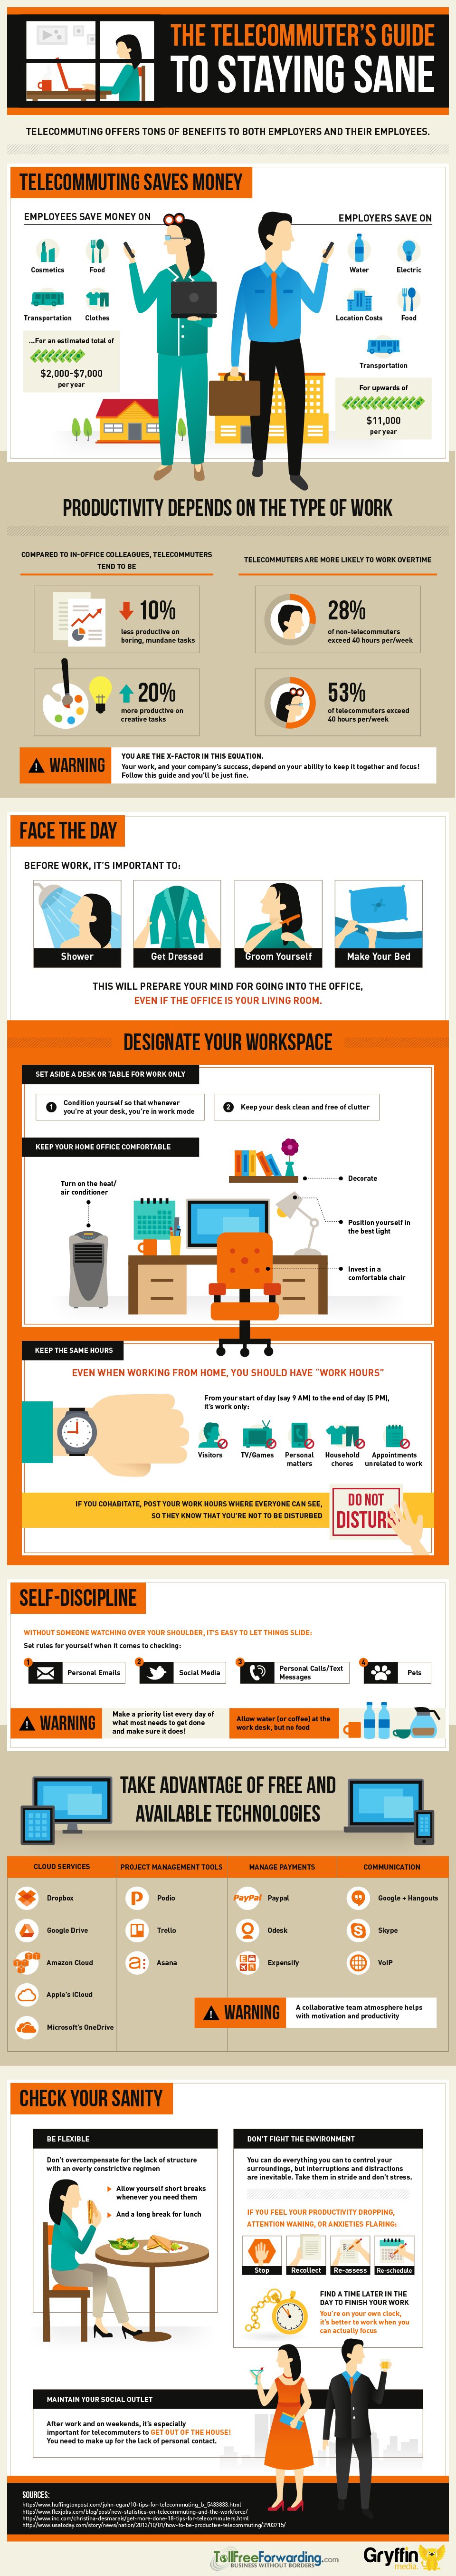 Infographic: The Telecommuter's Guide to Staying Sane